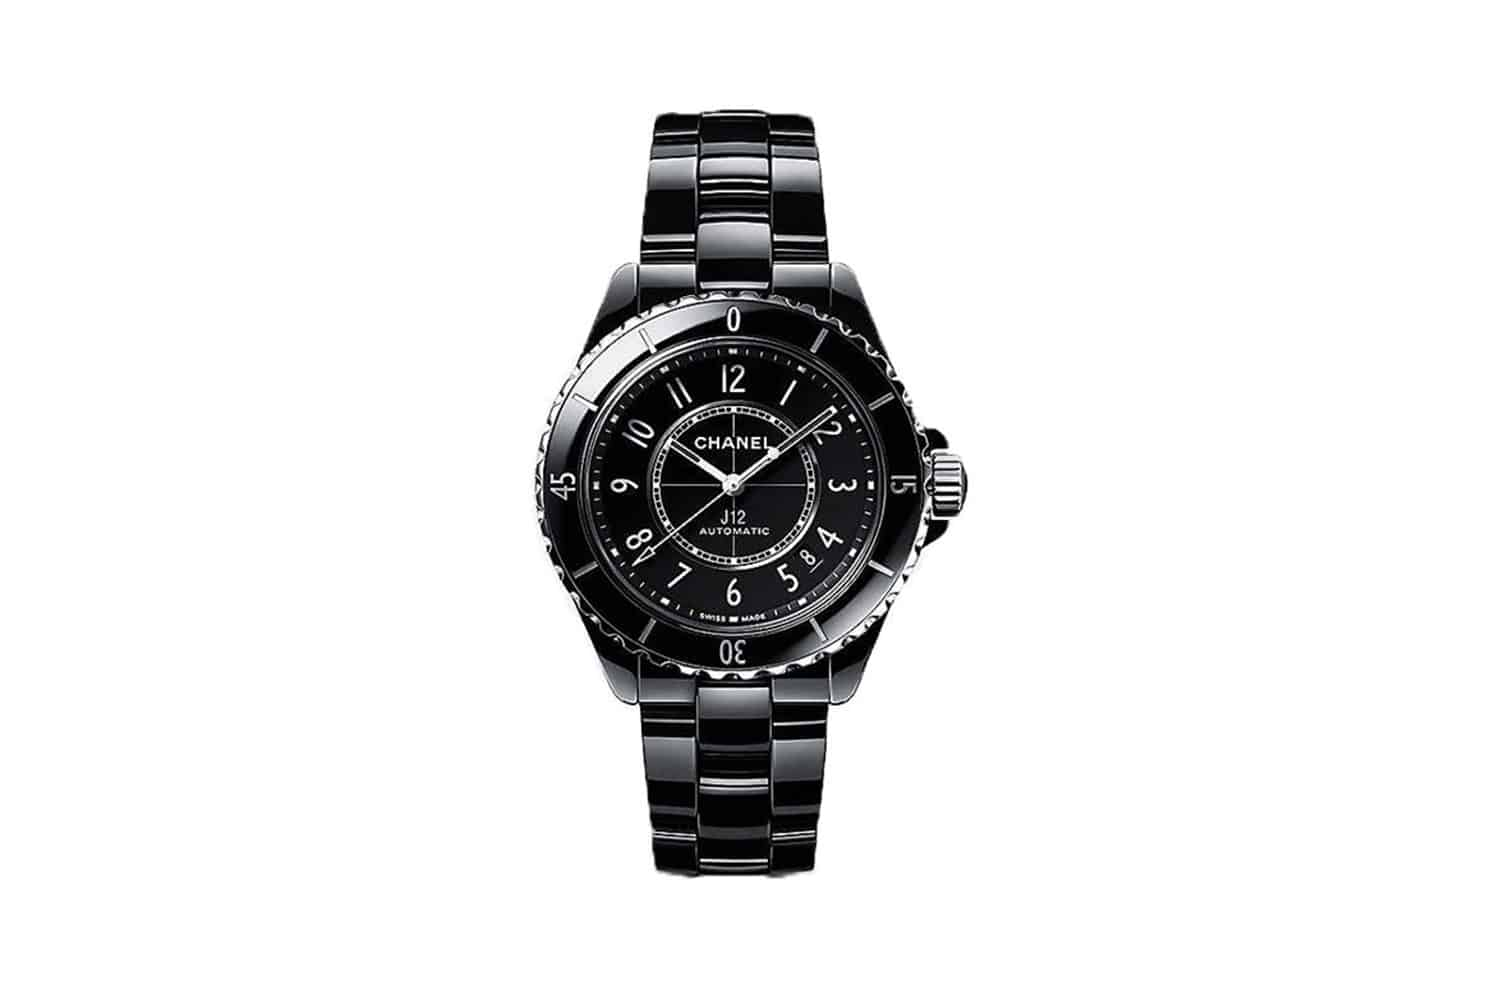 Chanel-J12-automatic-ceramic-and-steel-watch